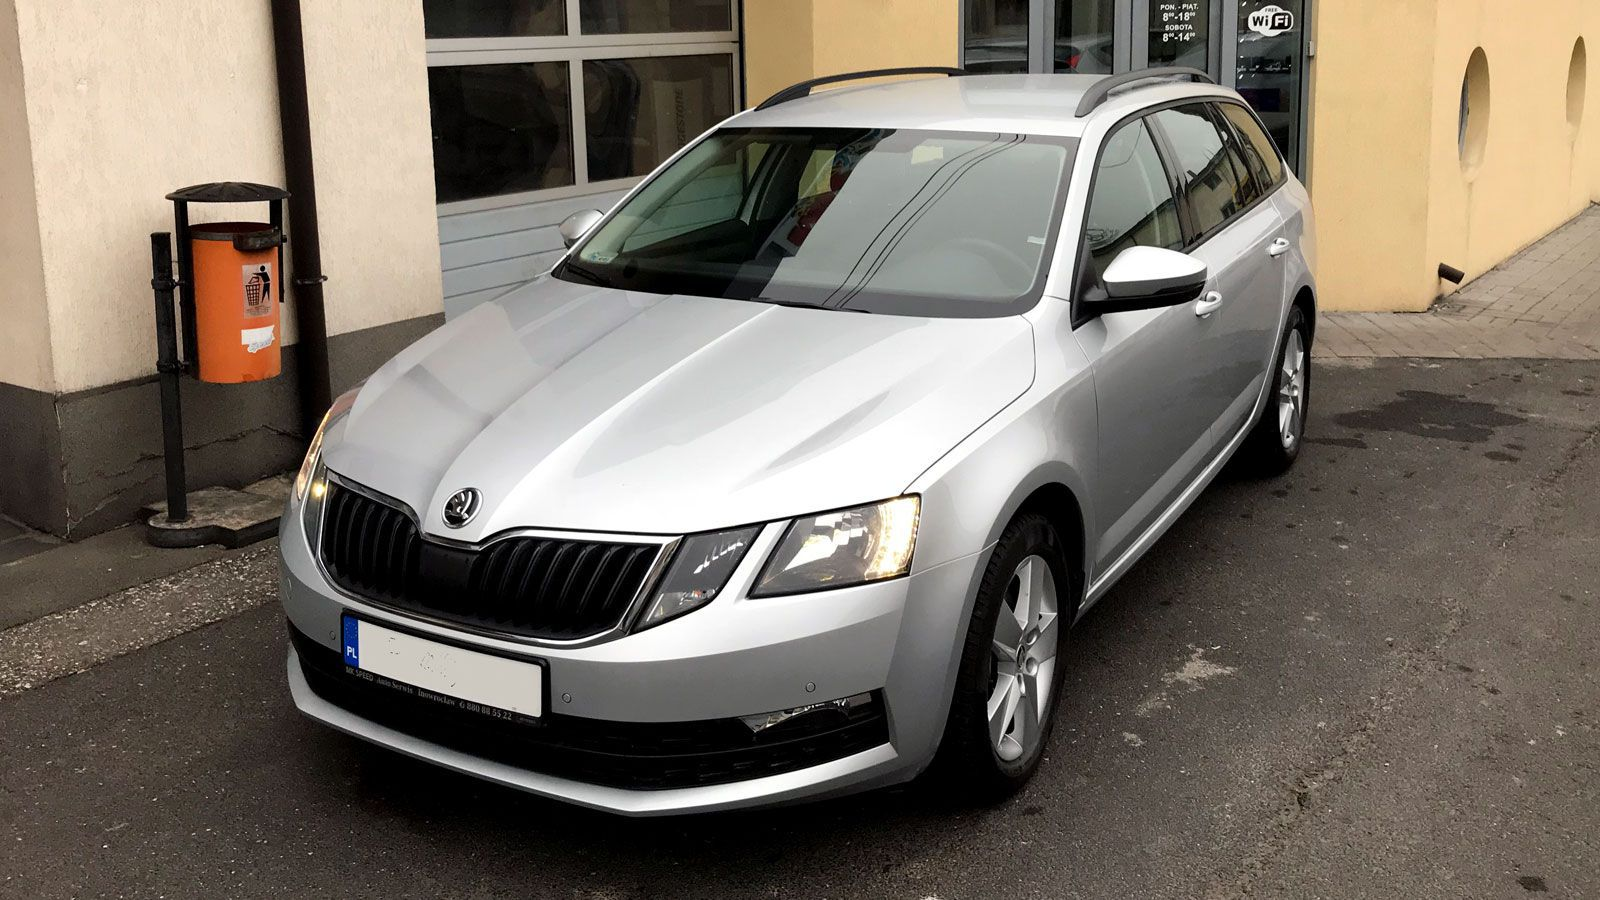 Skoda Octavia TSI - Mk-Speed Rent a Car